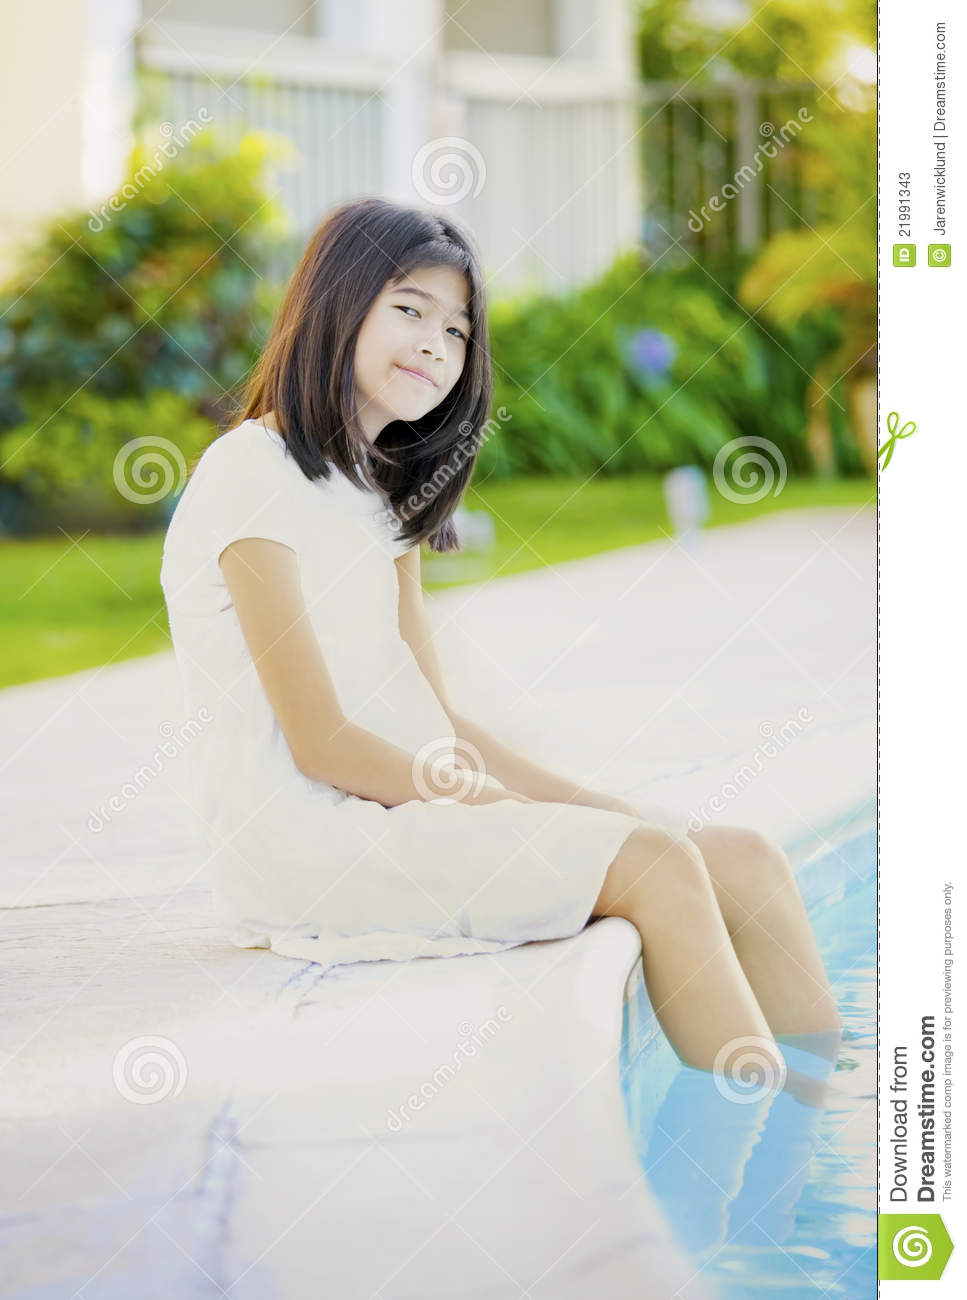 Ten Year Old Girl Repaxing By Pool Stock Photos - Image